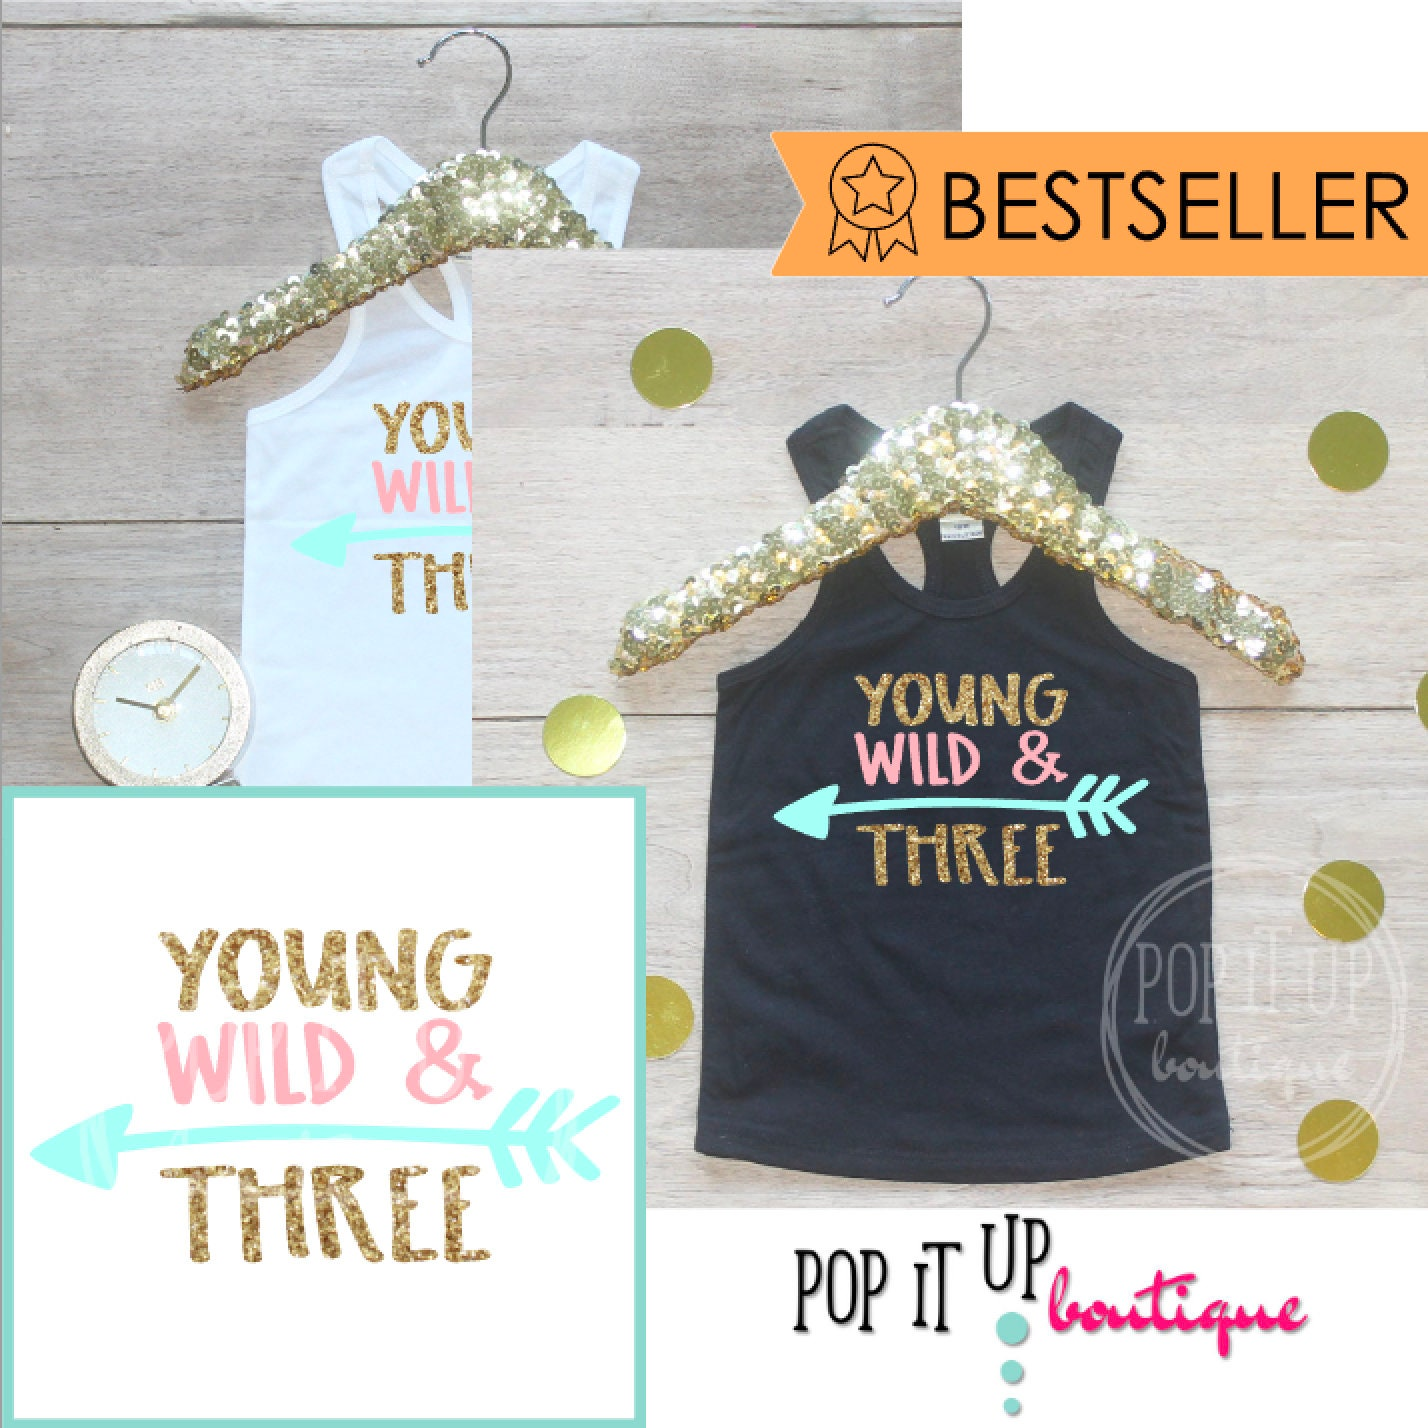 3 Year Old Birthday Girl Tank Top Shirt Baby Clothes Young Wild Three Third 3rd Outfit Tshirt 238